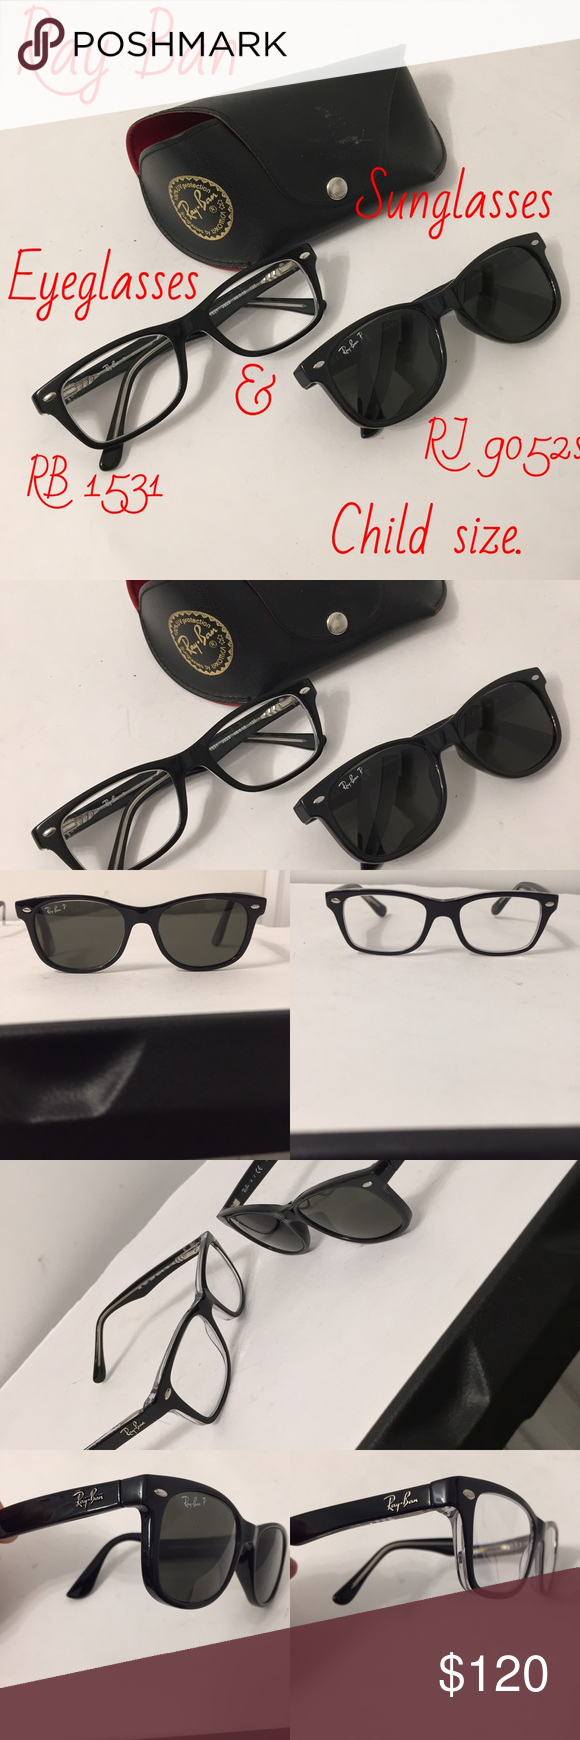 f1c670b8eef5 2 sets of child size Ray Bans